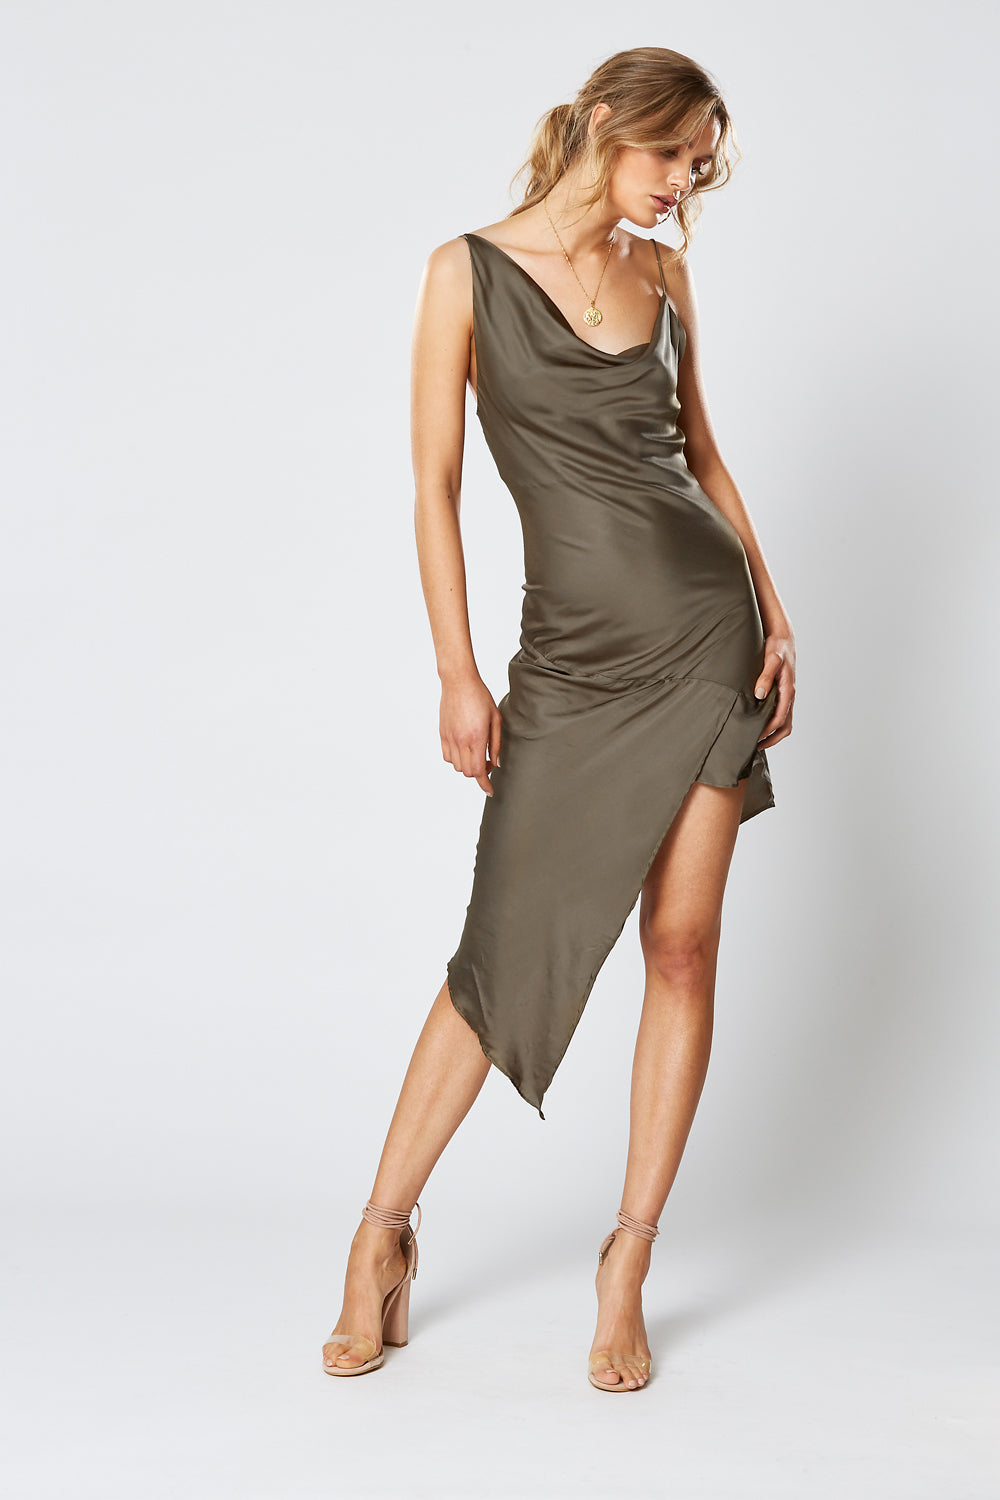 BRITANNIA ASYMMETRICAL DRESS OLIVE